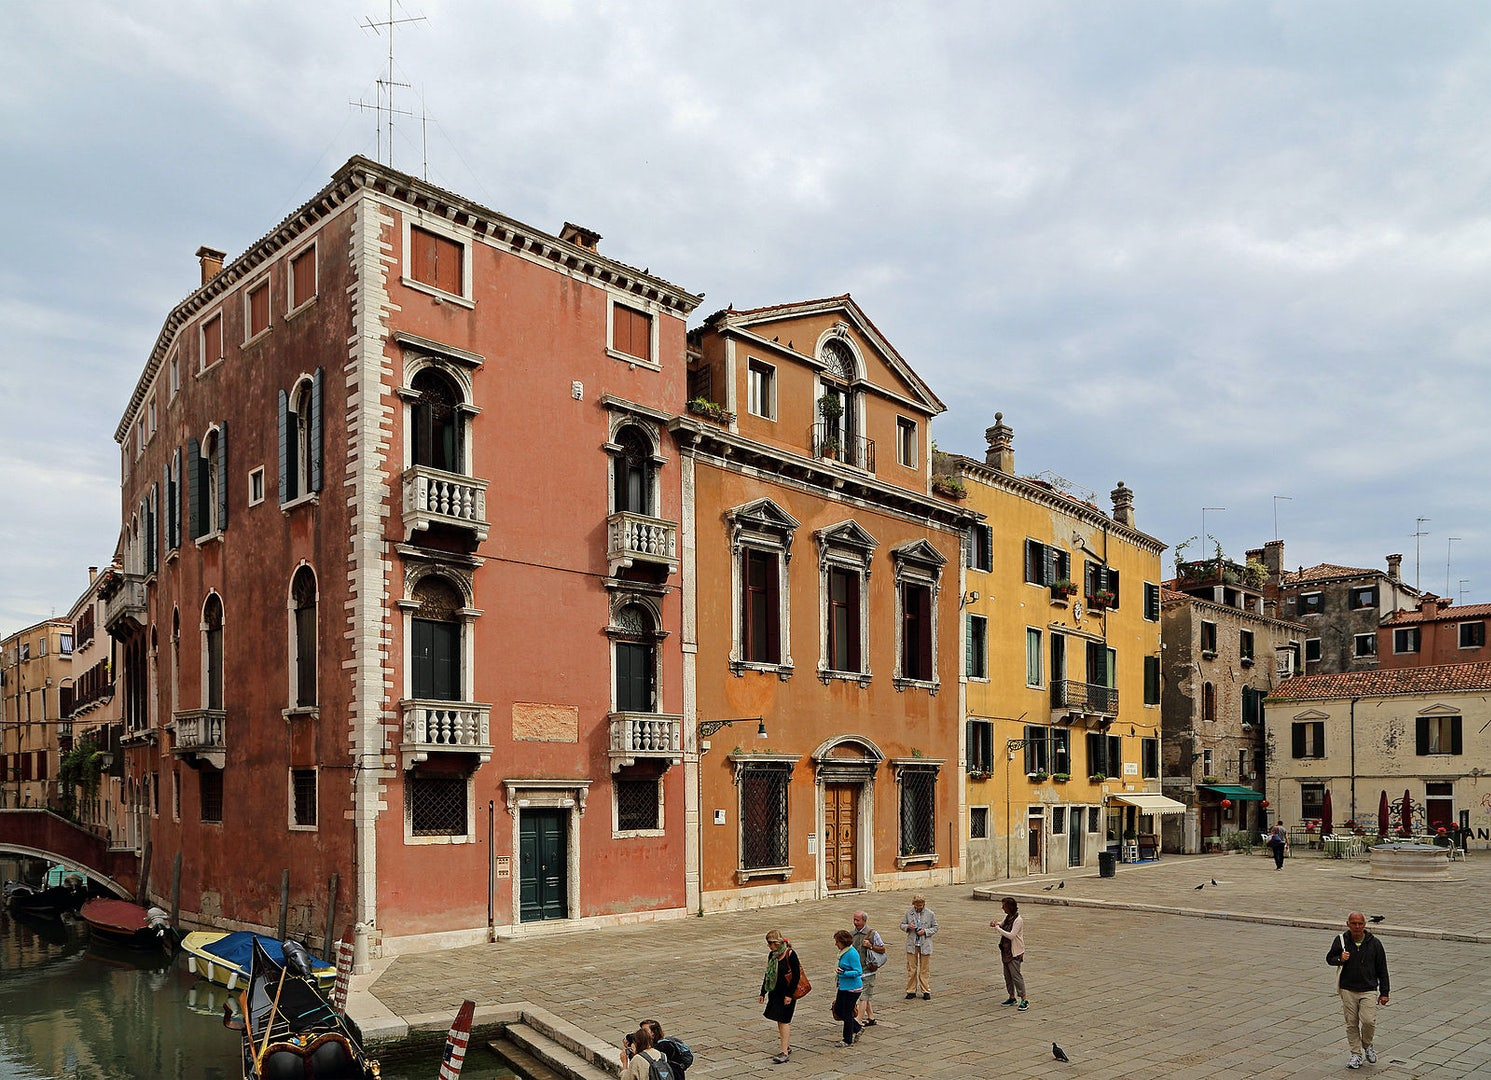 the Campo dei Frari and building in Venice